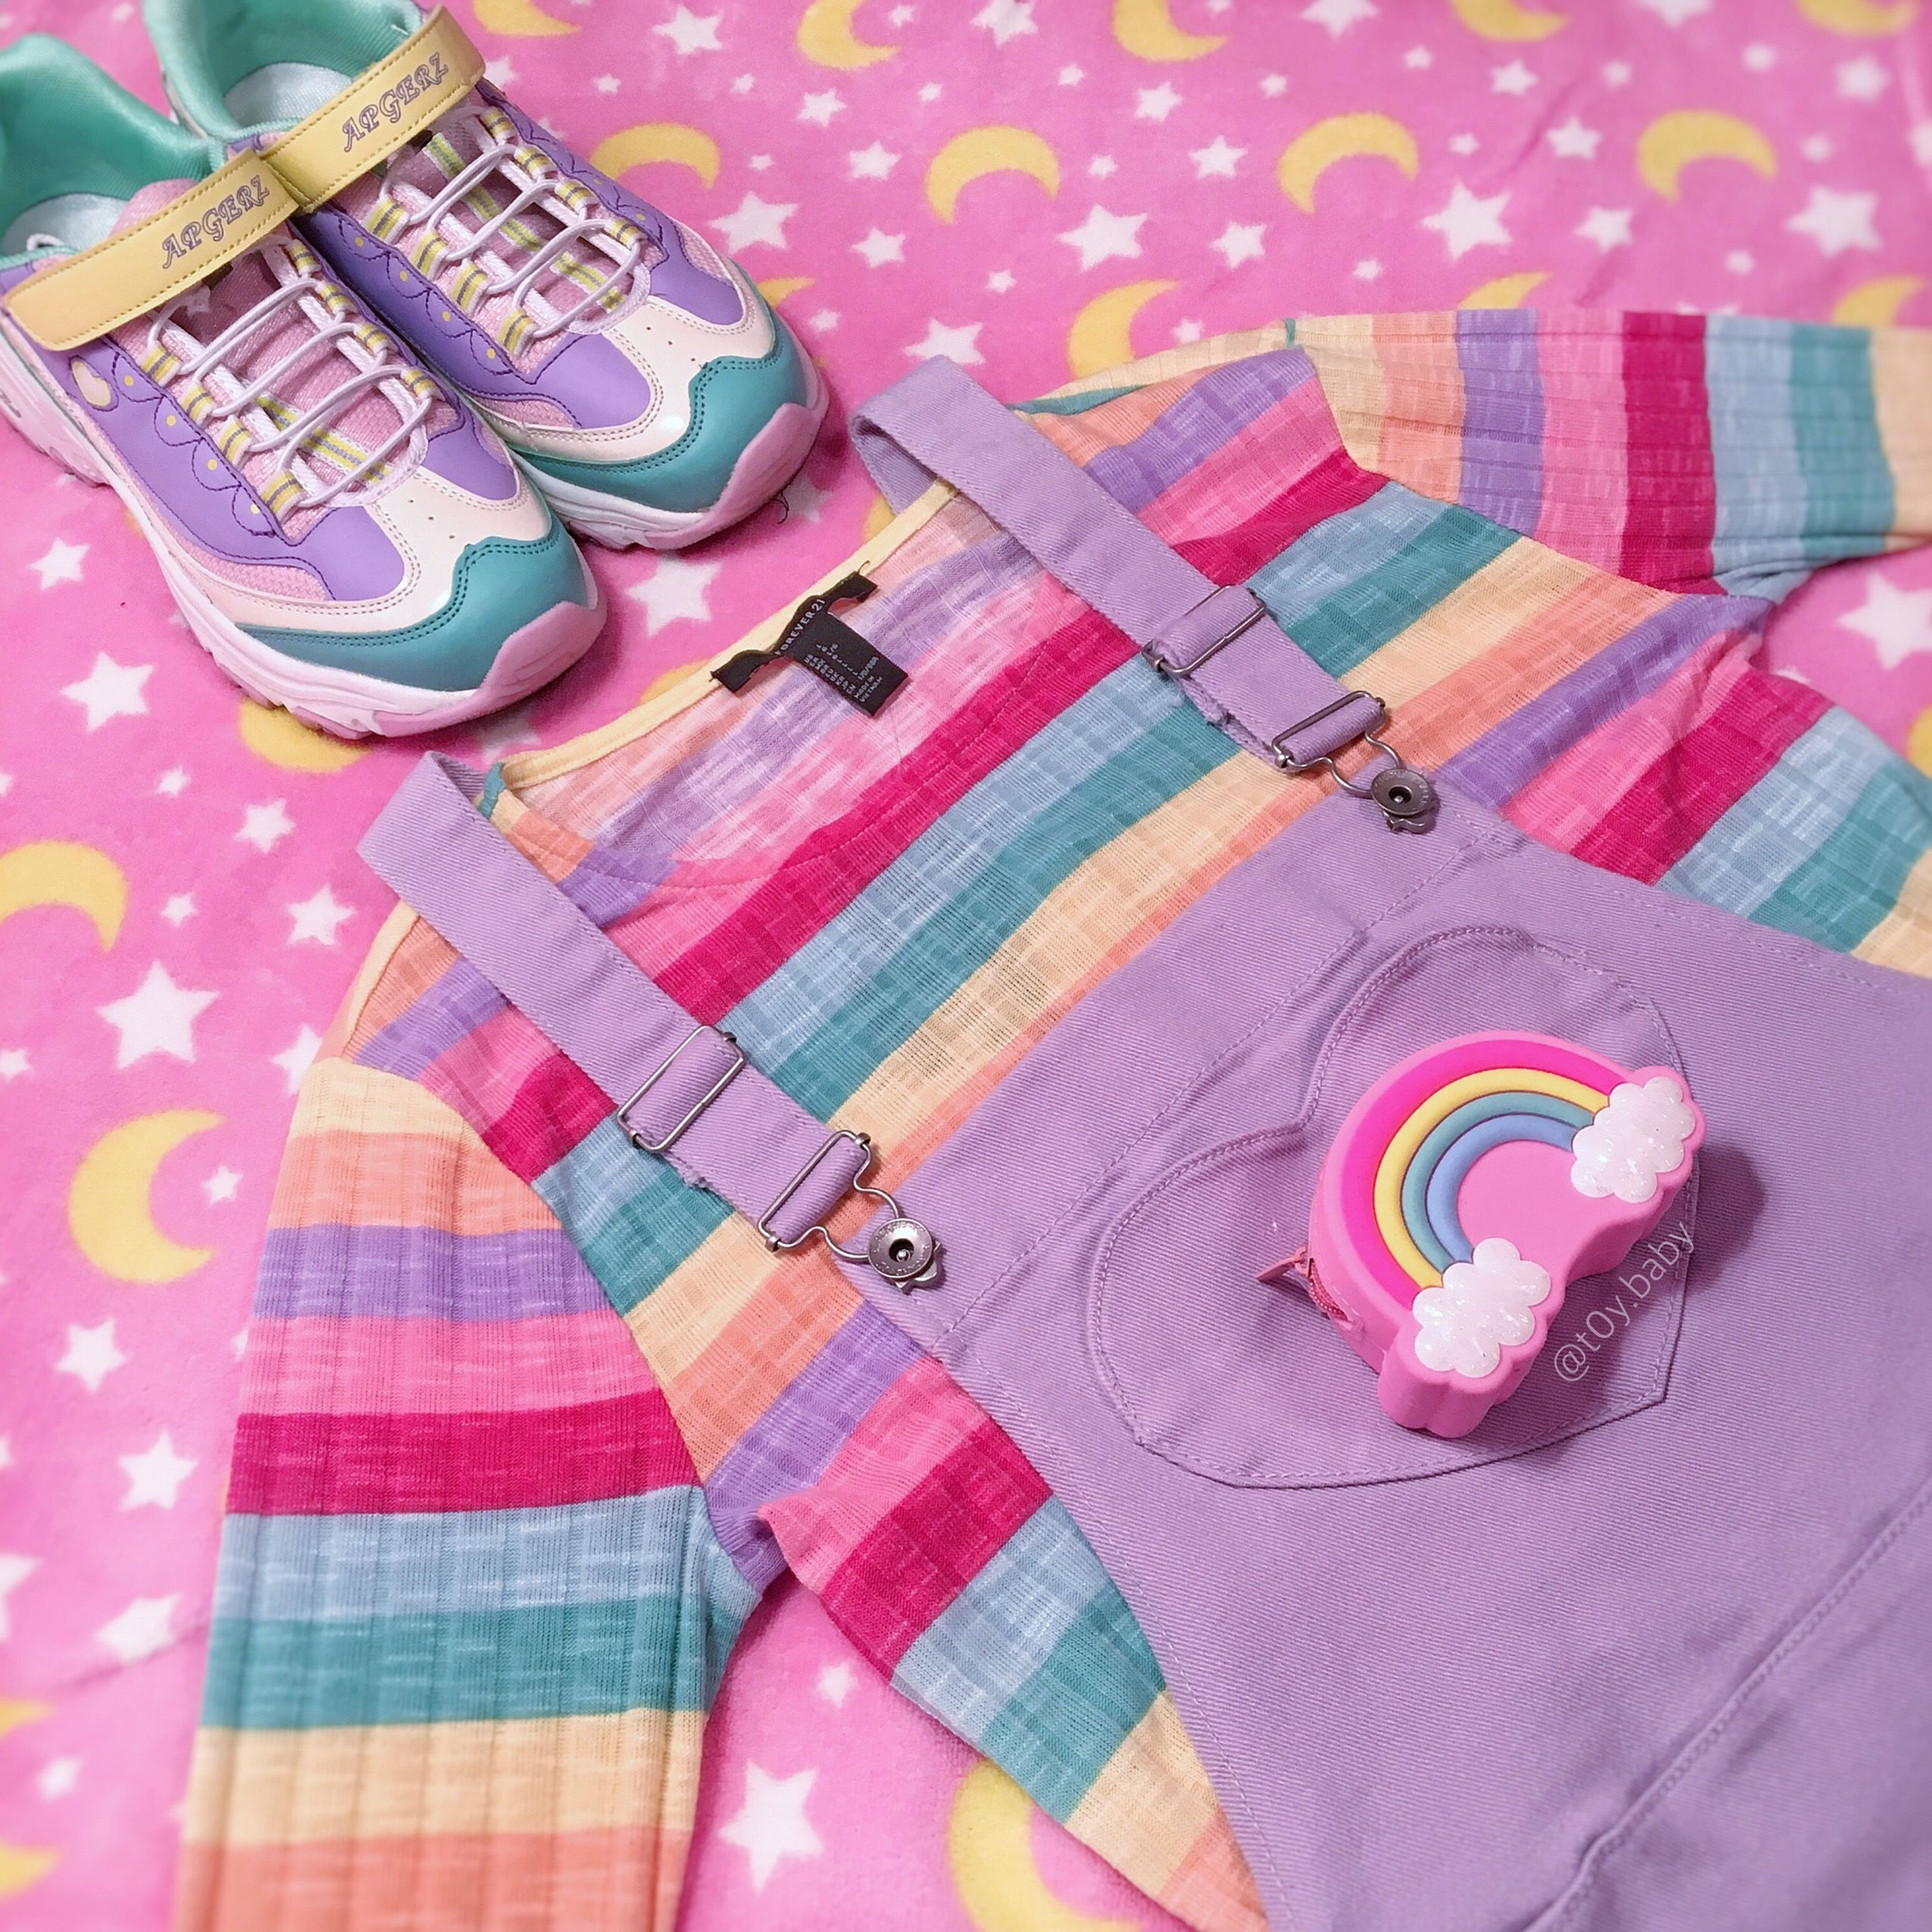 1310acee64b  aesthetic  rainbow  pastel  pink  shoes  ootd  outfit  fashion  overalls   stripes  kawaii  cute  kawaiifashion  kawaiiaesthetic  jfashion   harajukufashion ...